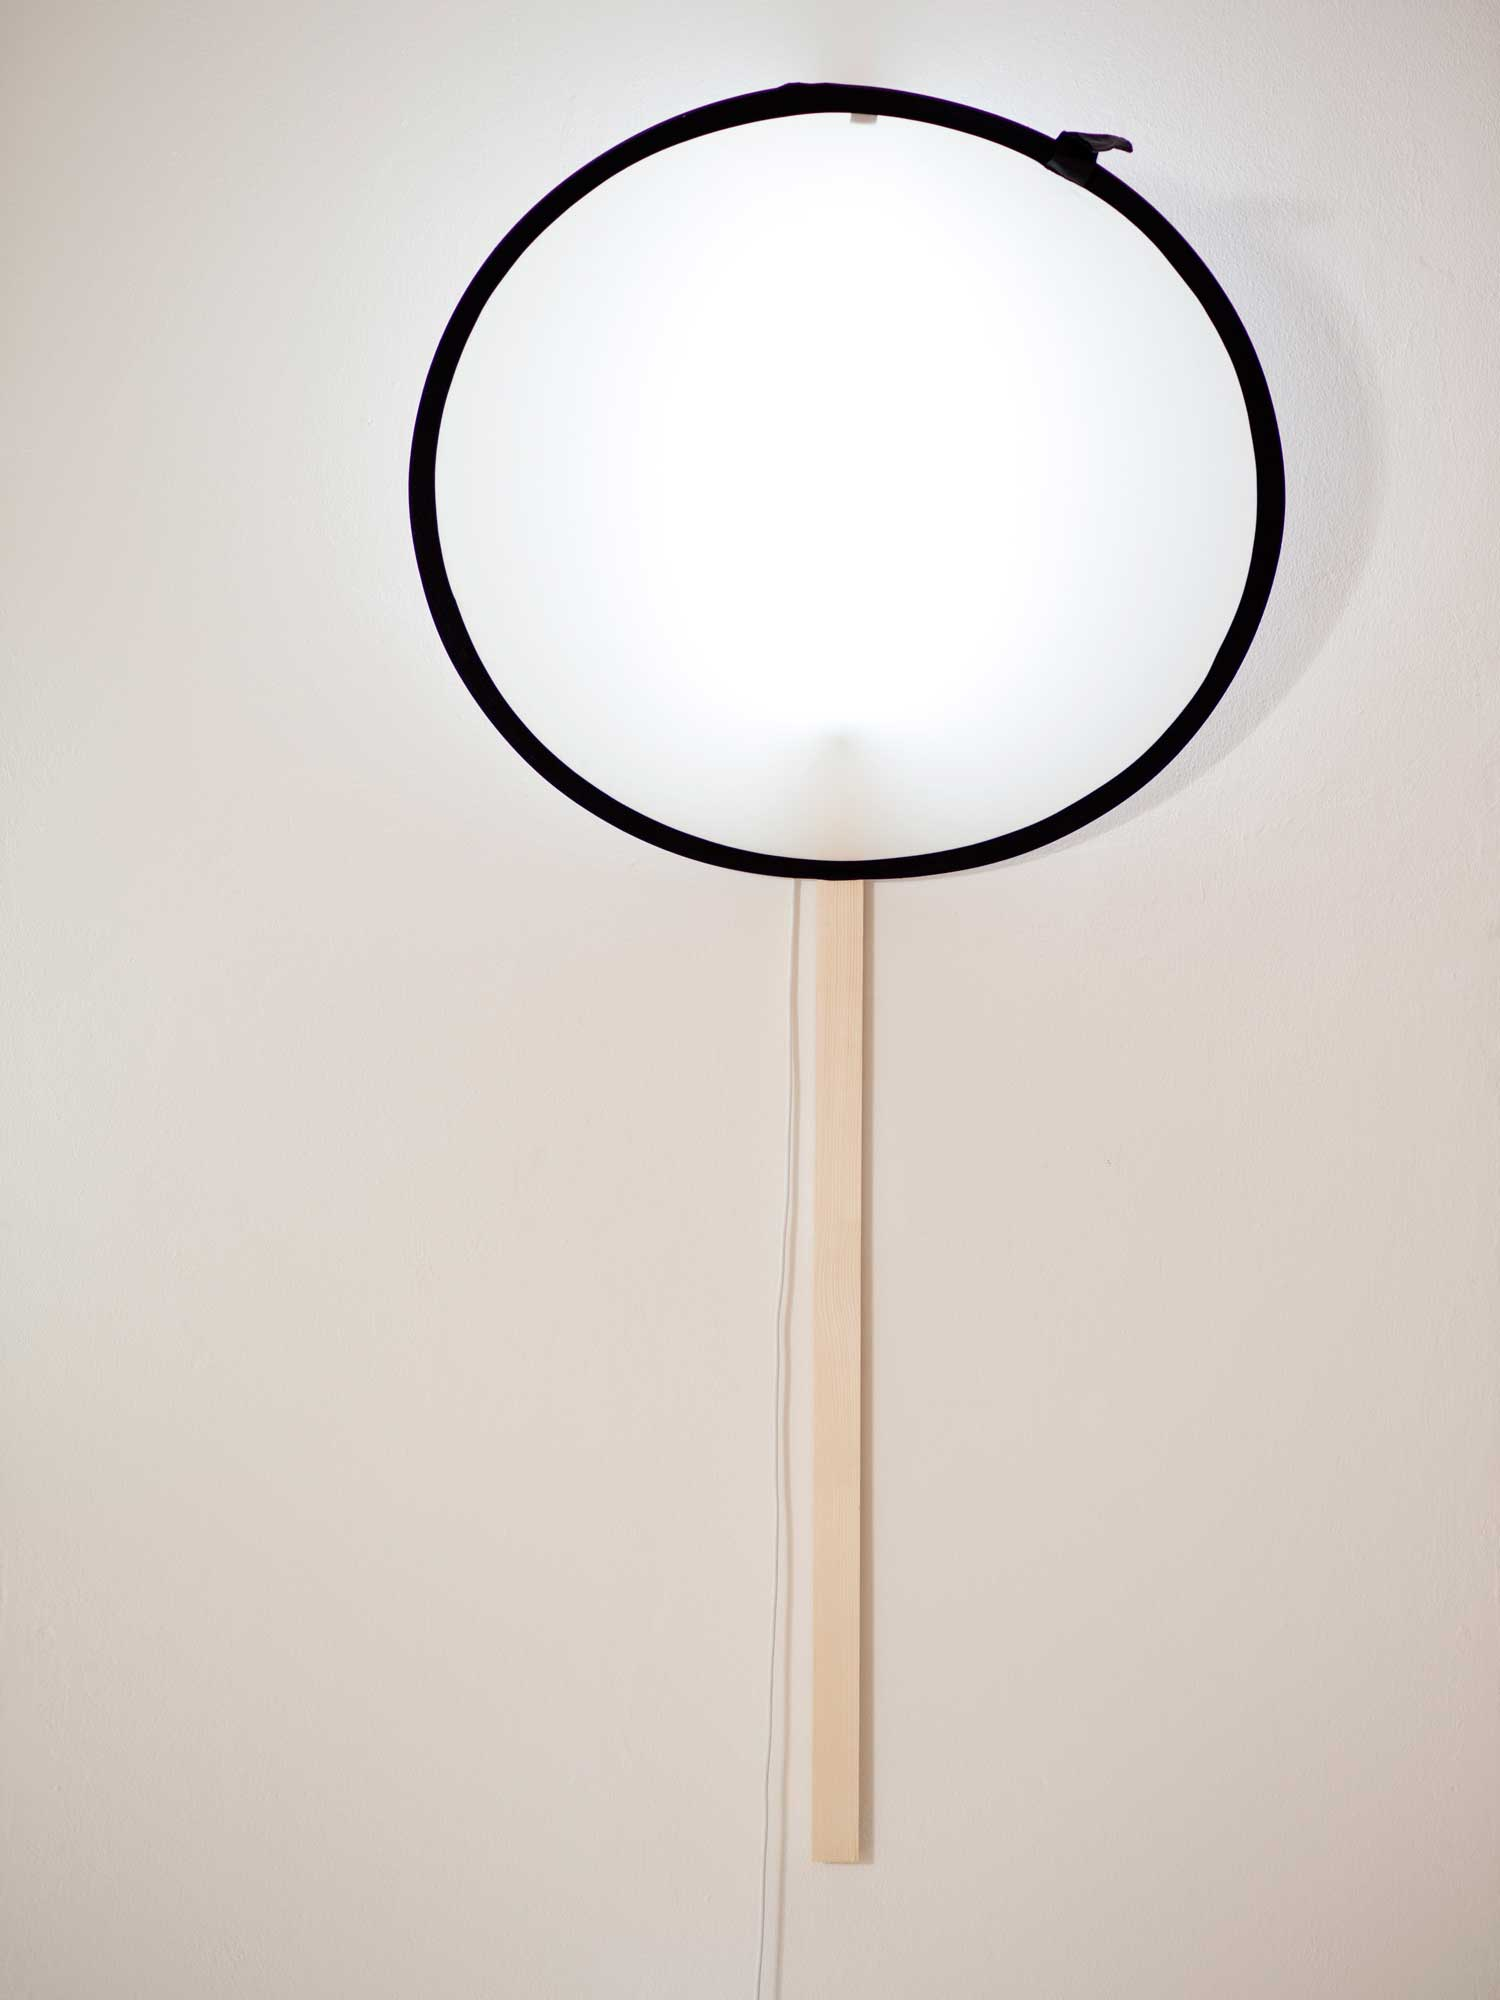 DIY Lights, A, B, C by Ana Relvao and Gerhardt Kellermann | Yellowtrace